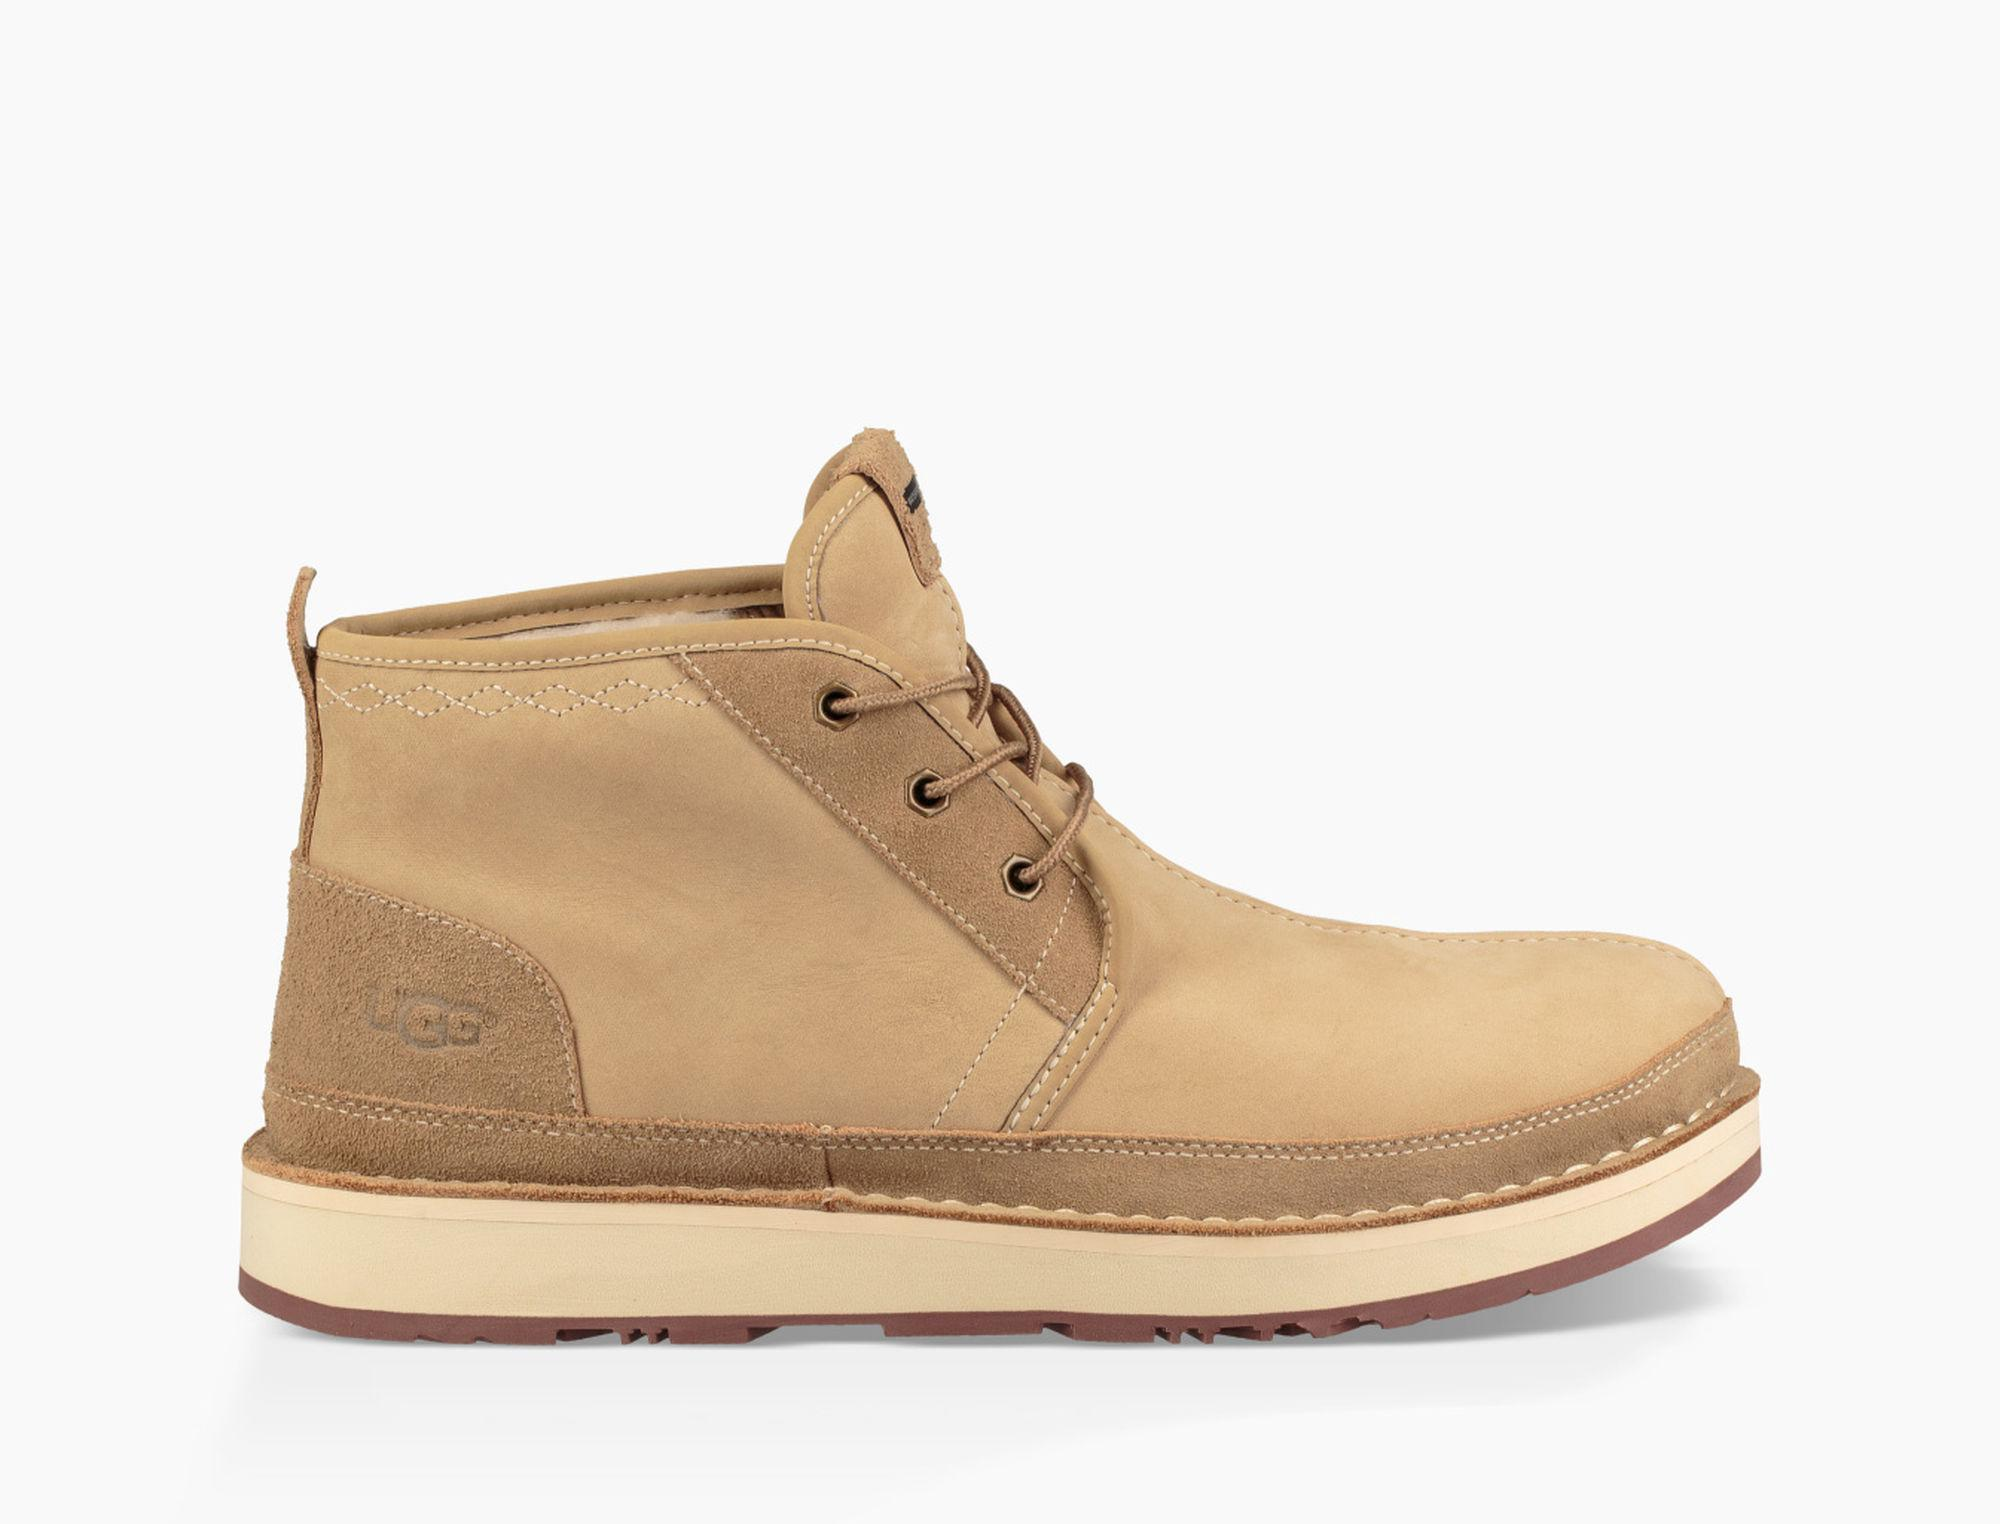 22129495d4b Ugg Natural Avalanche Neumel Boot Avalanche Neumel Boot for men